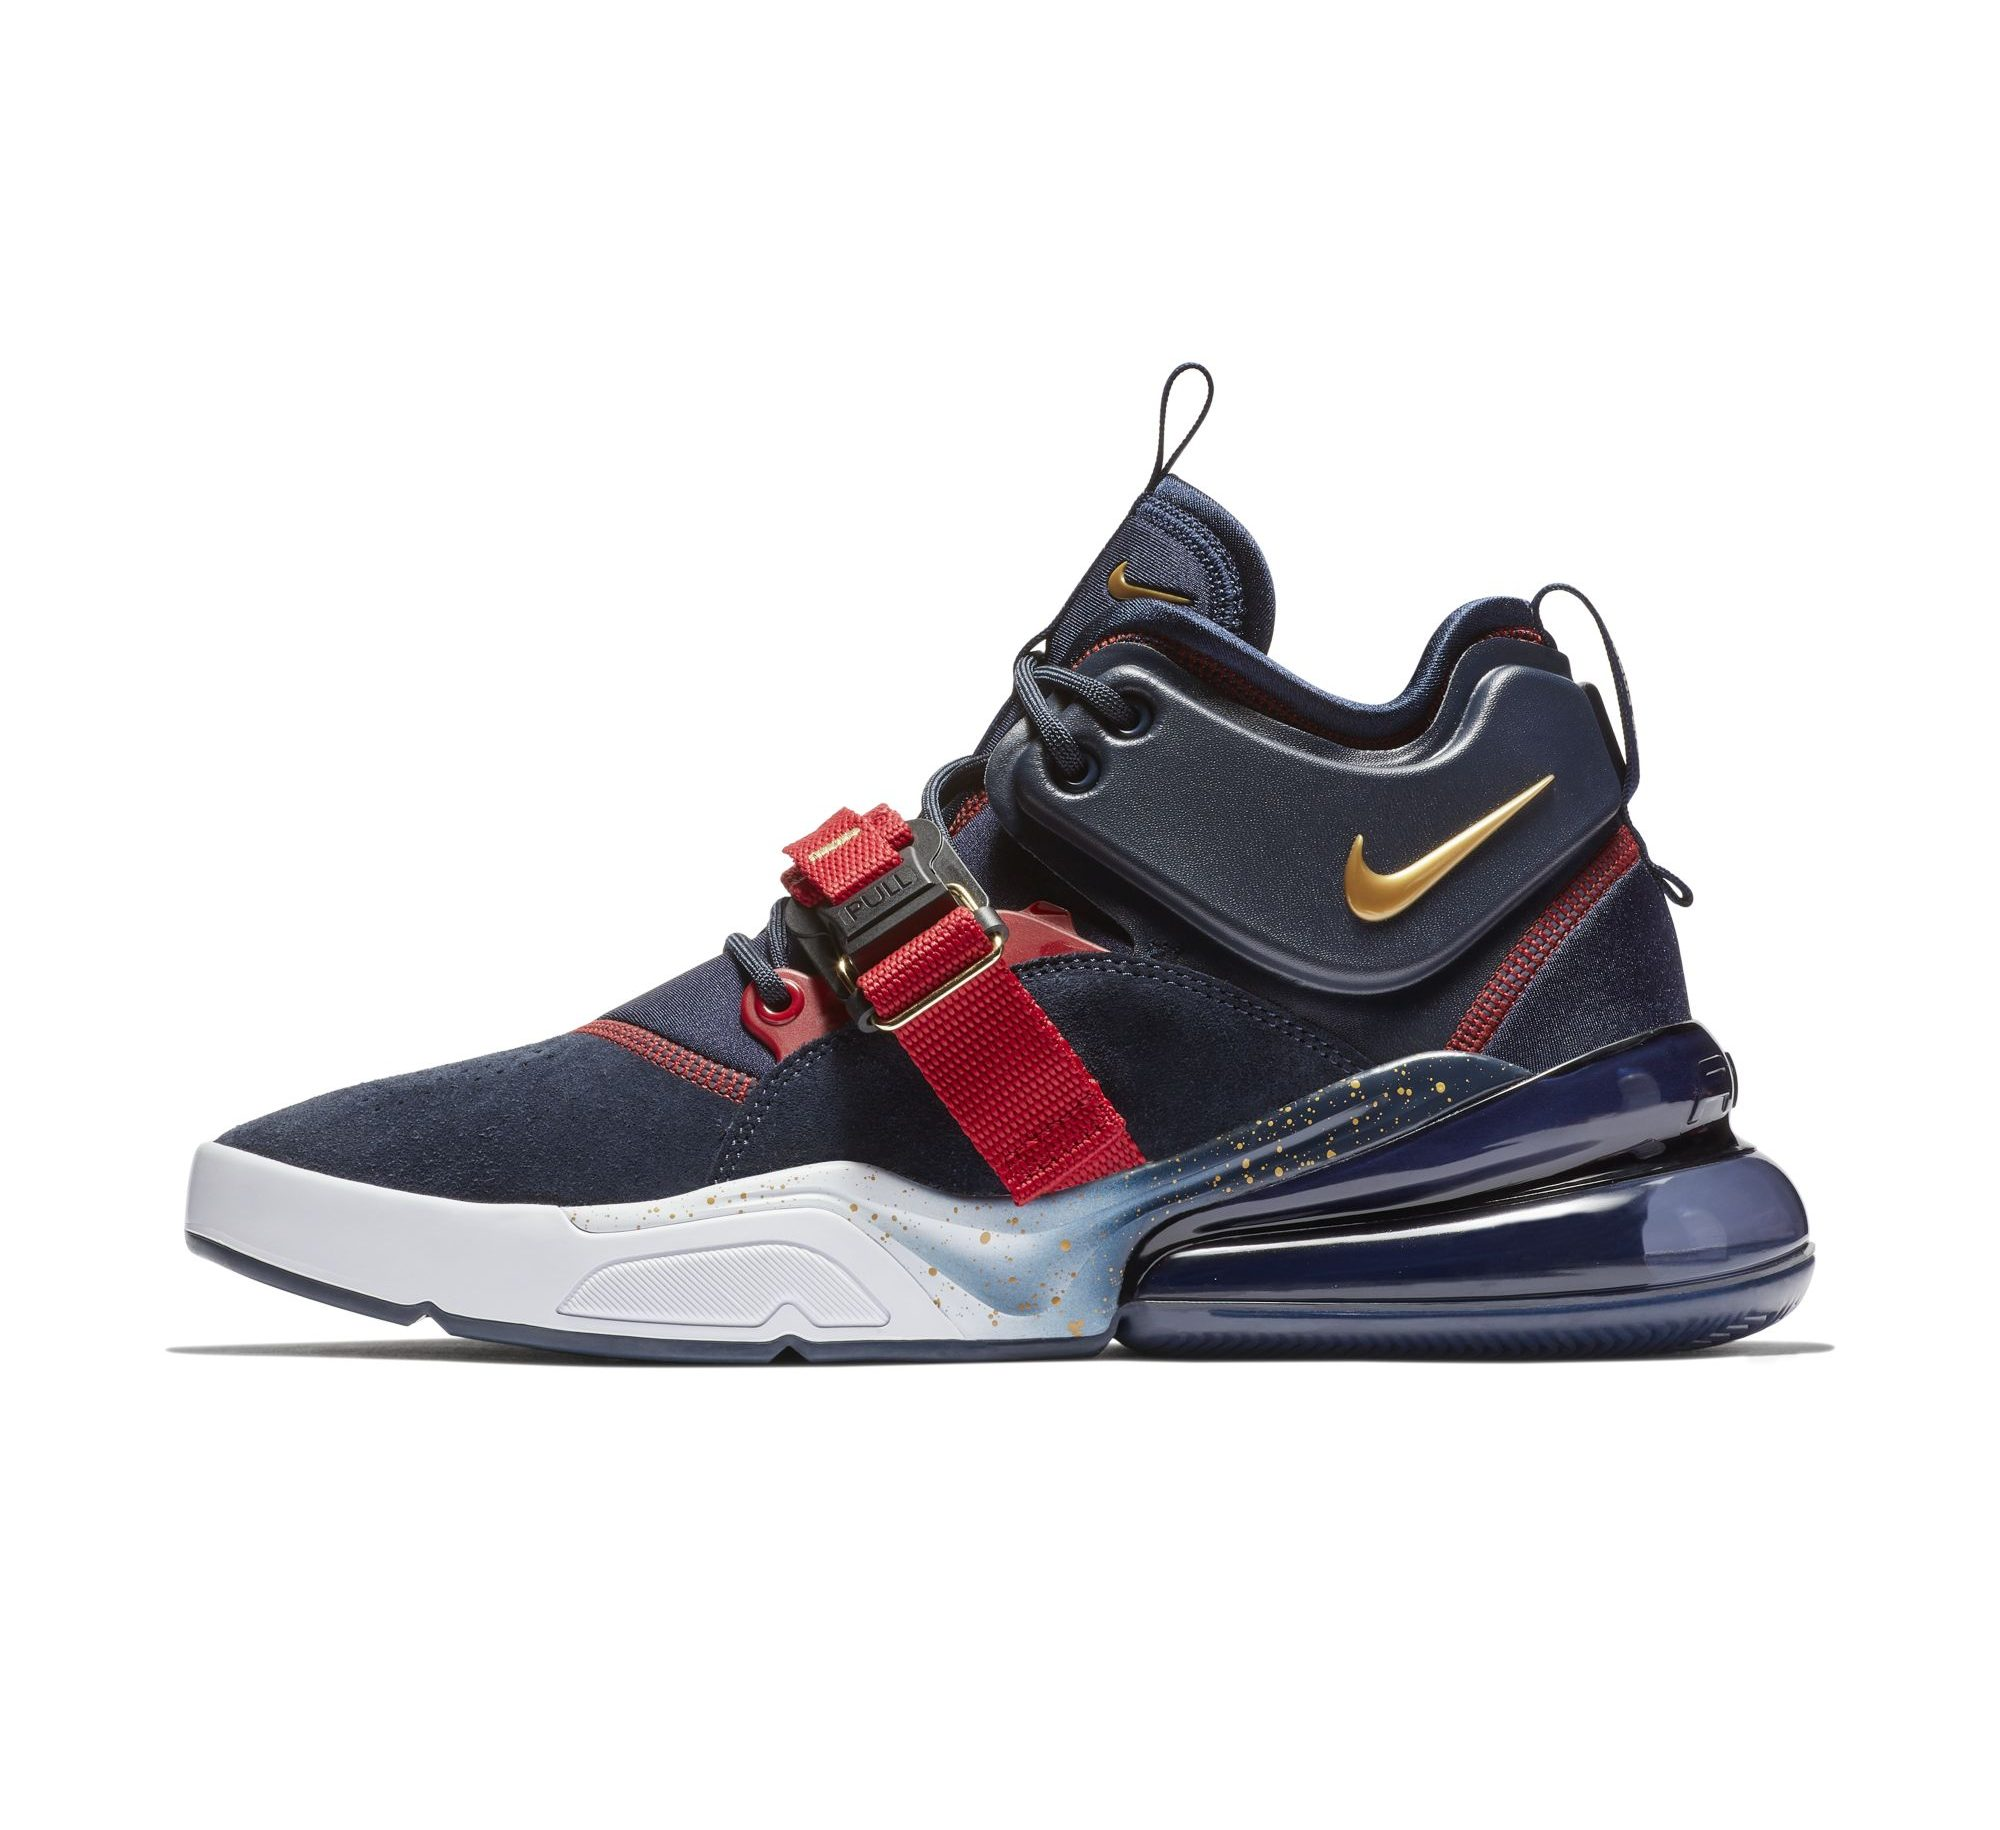 Buy nike air force 270 mid high tops > Up to 39% Discounts